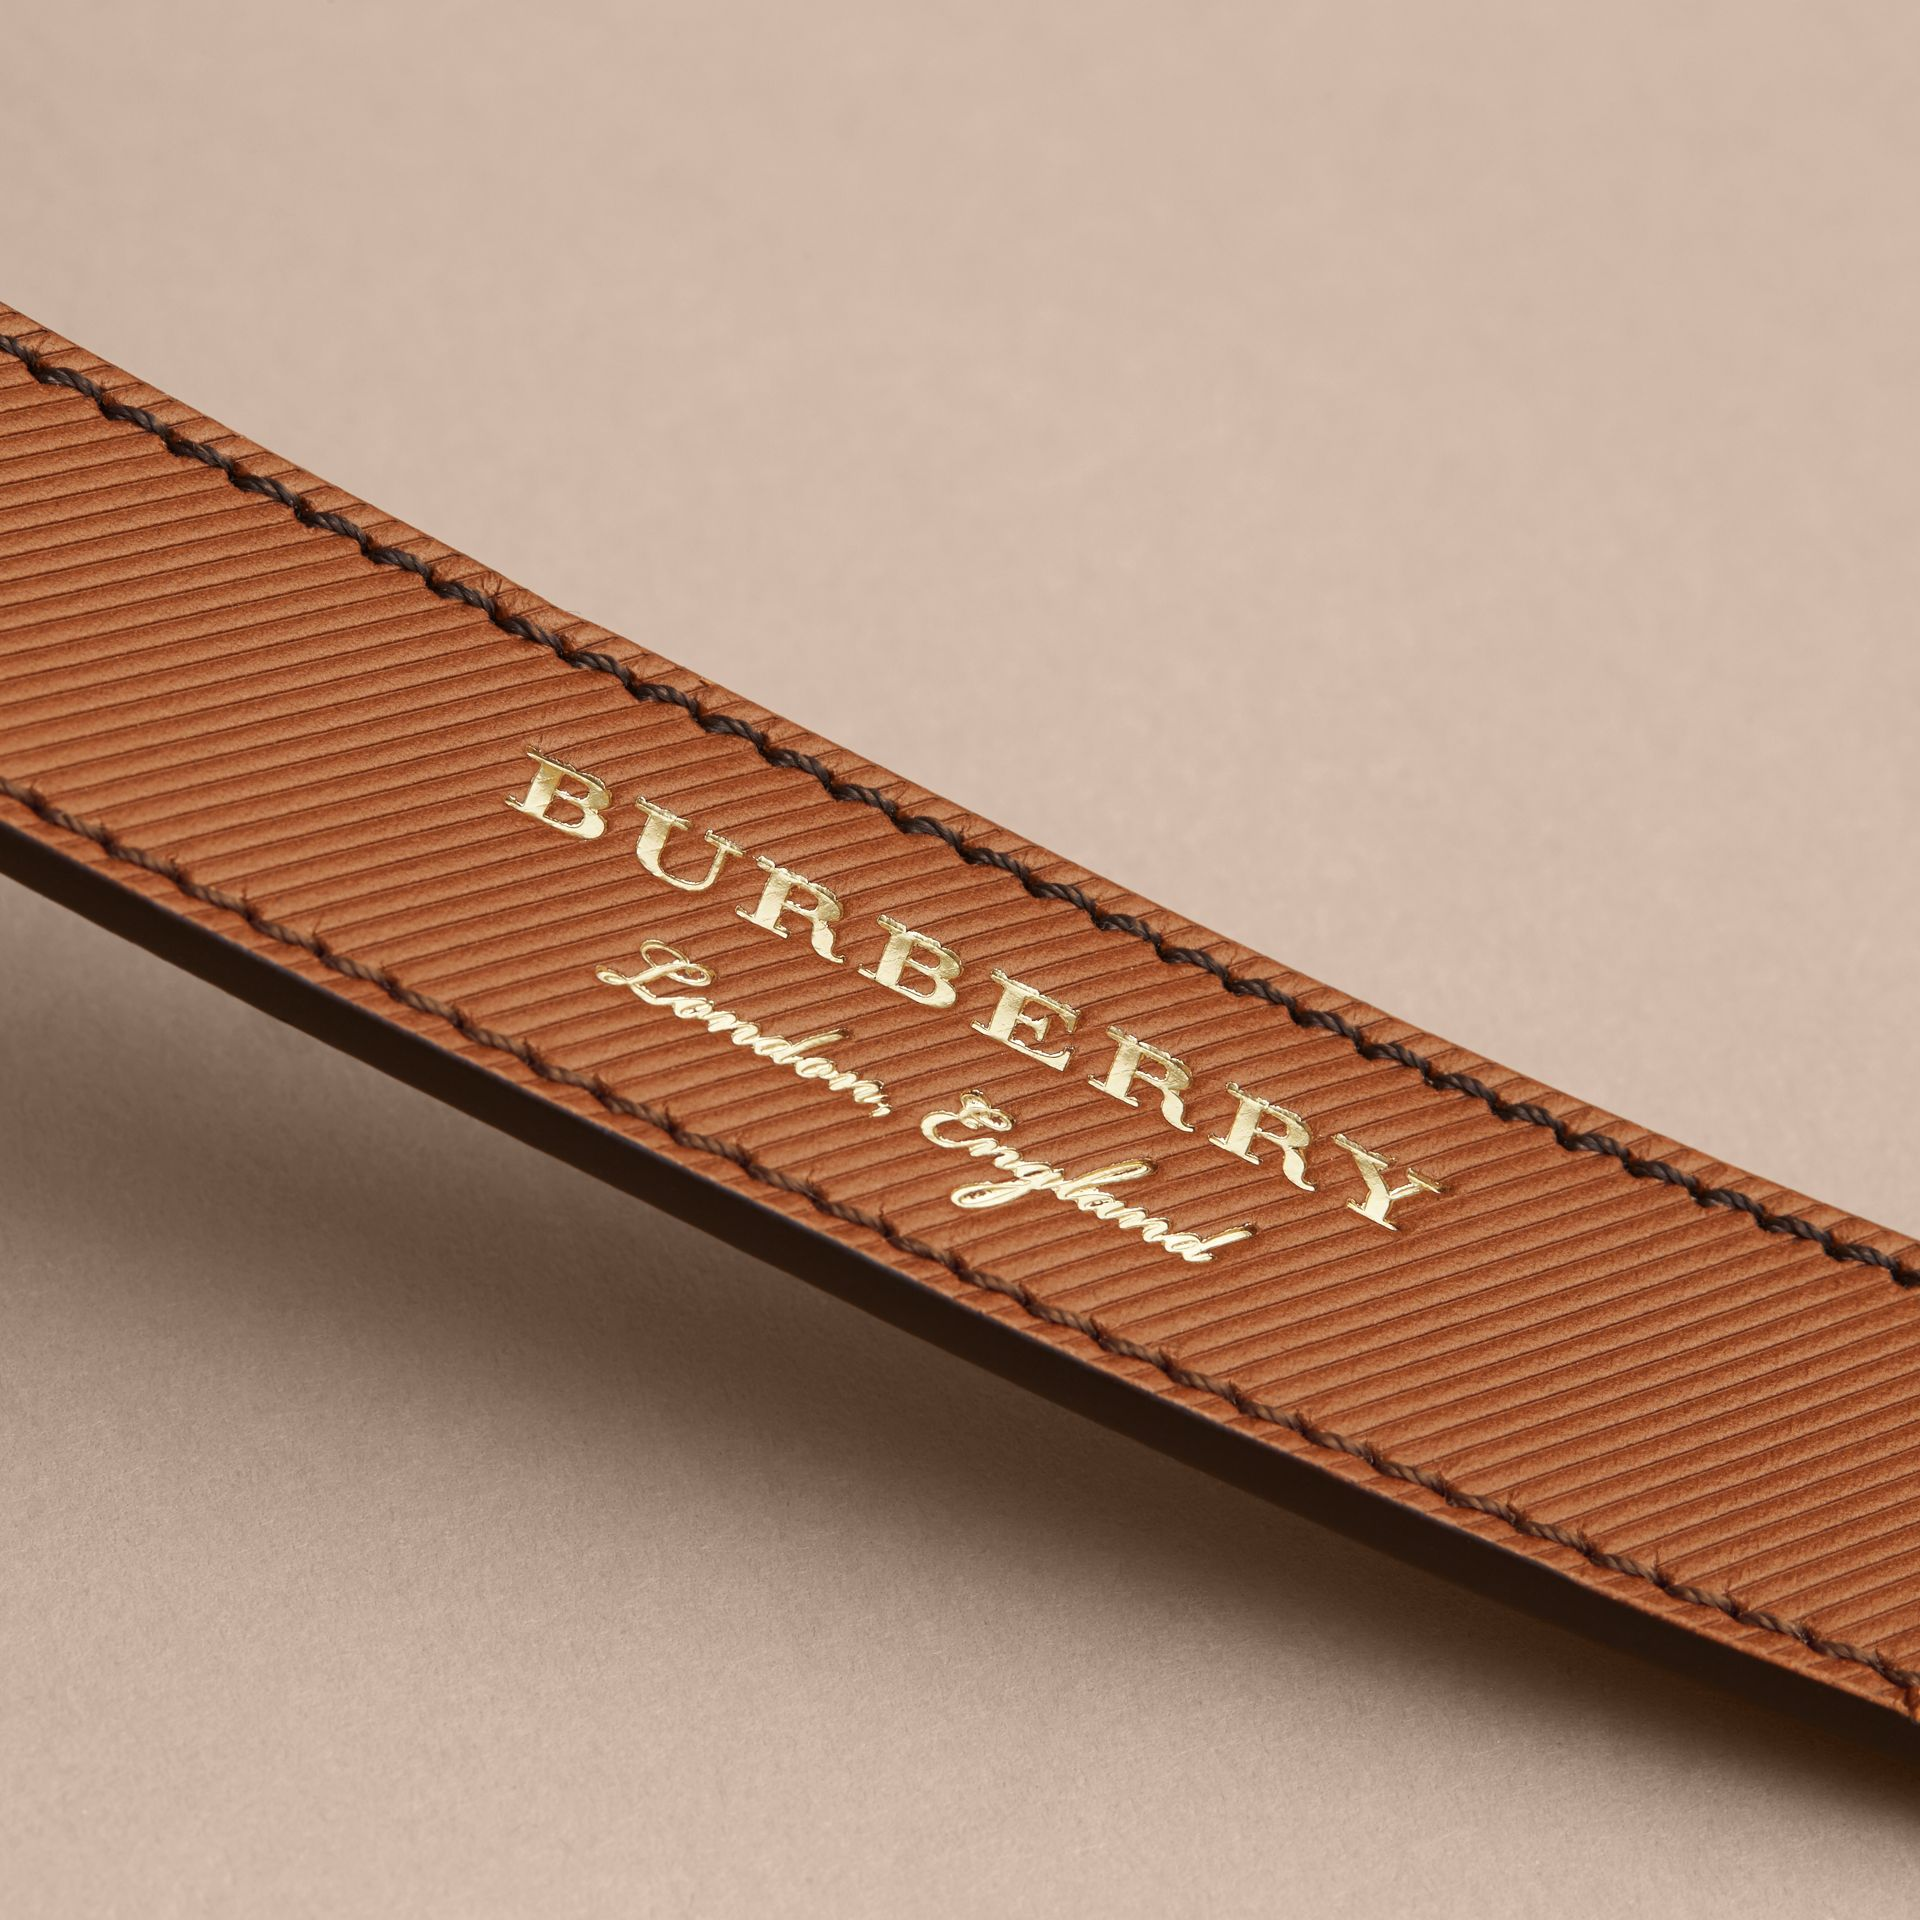 Trench Leather Belt in Tan - Men | Burberry Canada - gallery image 2